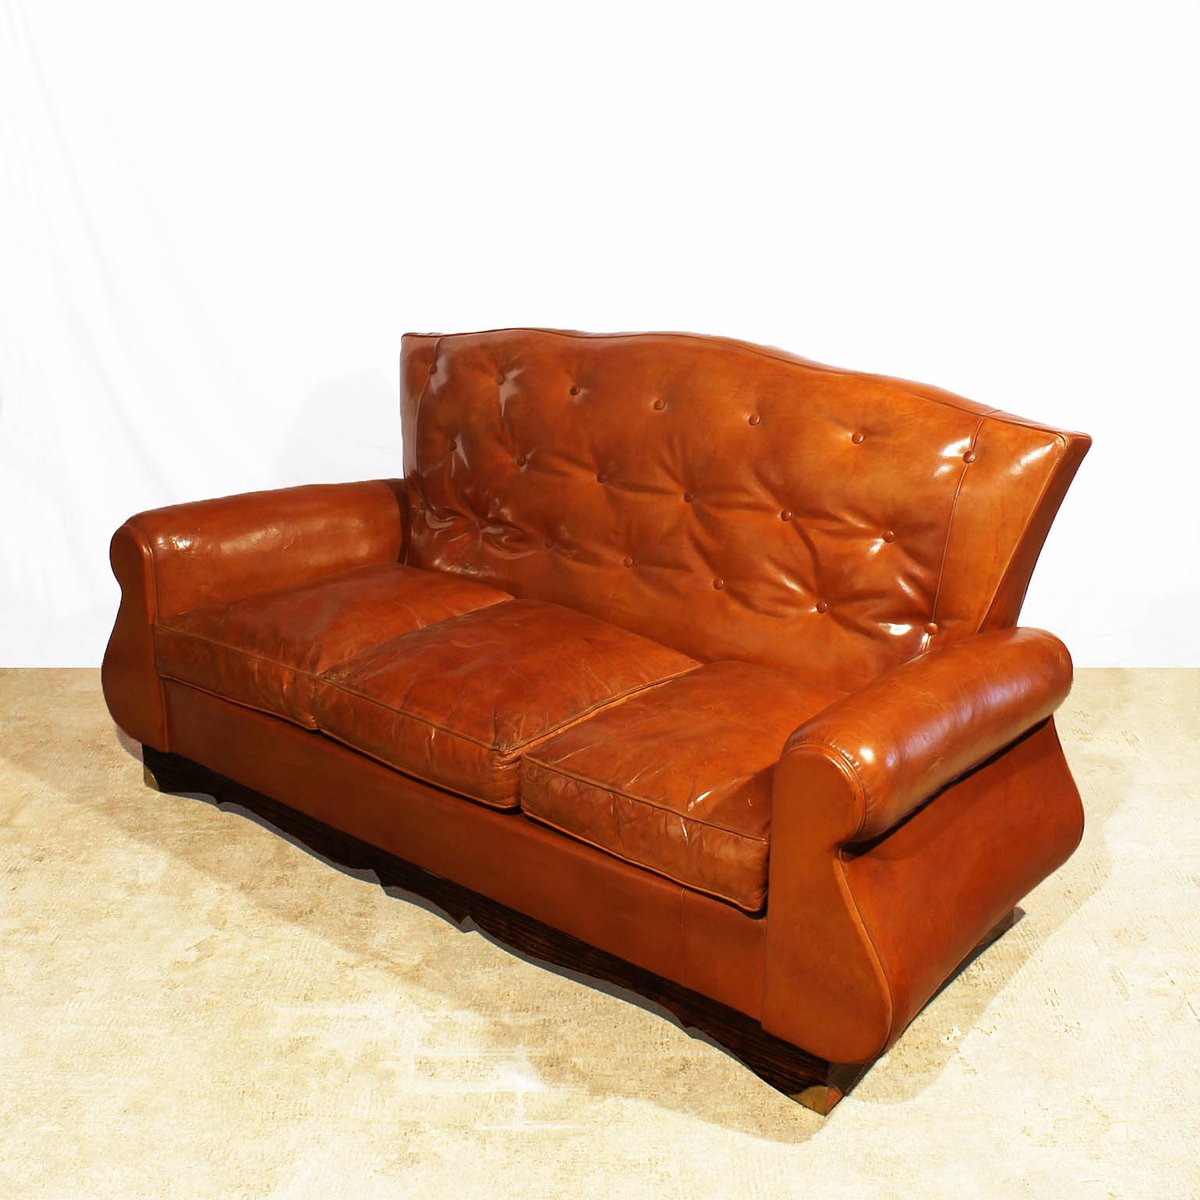 Chesterfield Sofa Price: Chesterfield Style Sofa, 1940s For Sale At Pamono